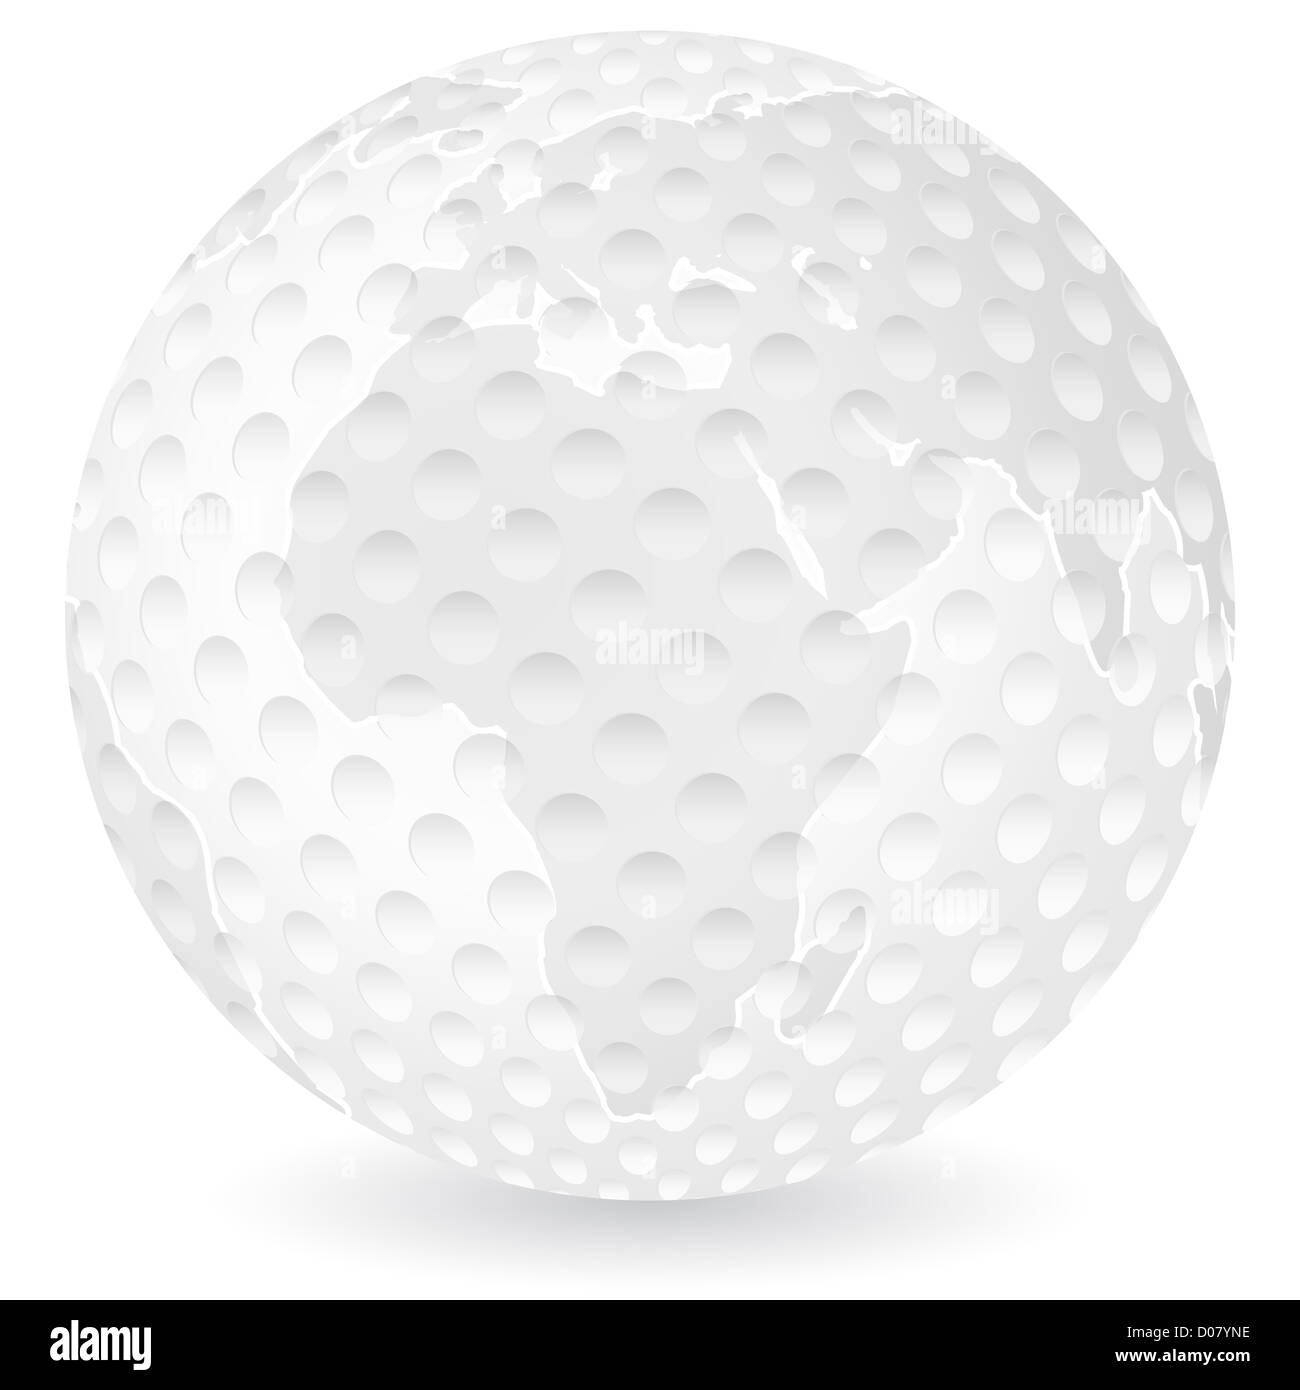 World map golf ball on a white background vector illustration stock world map golf ball on a white background vector illustration gumiabroncs Images